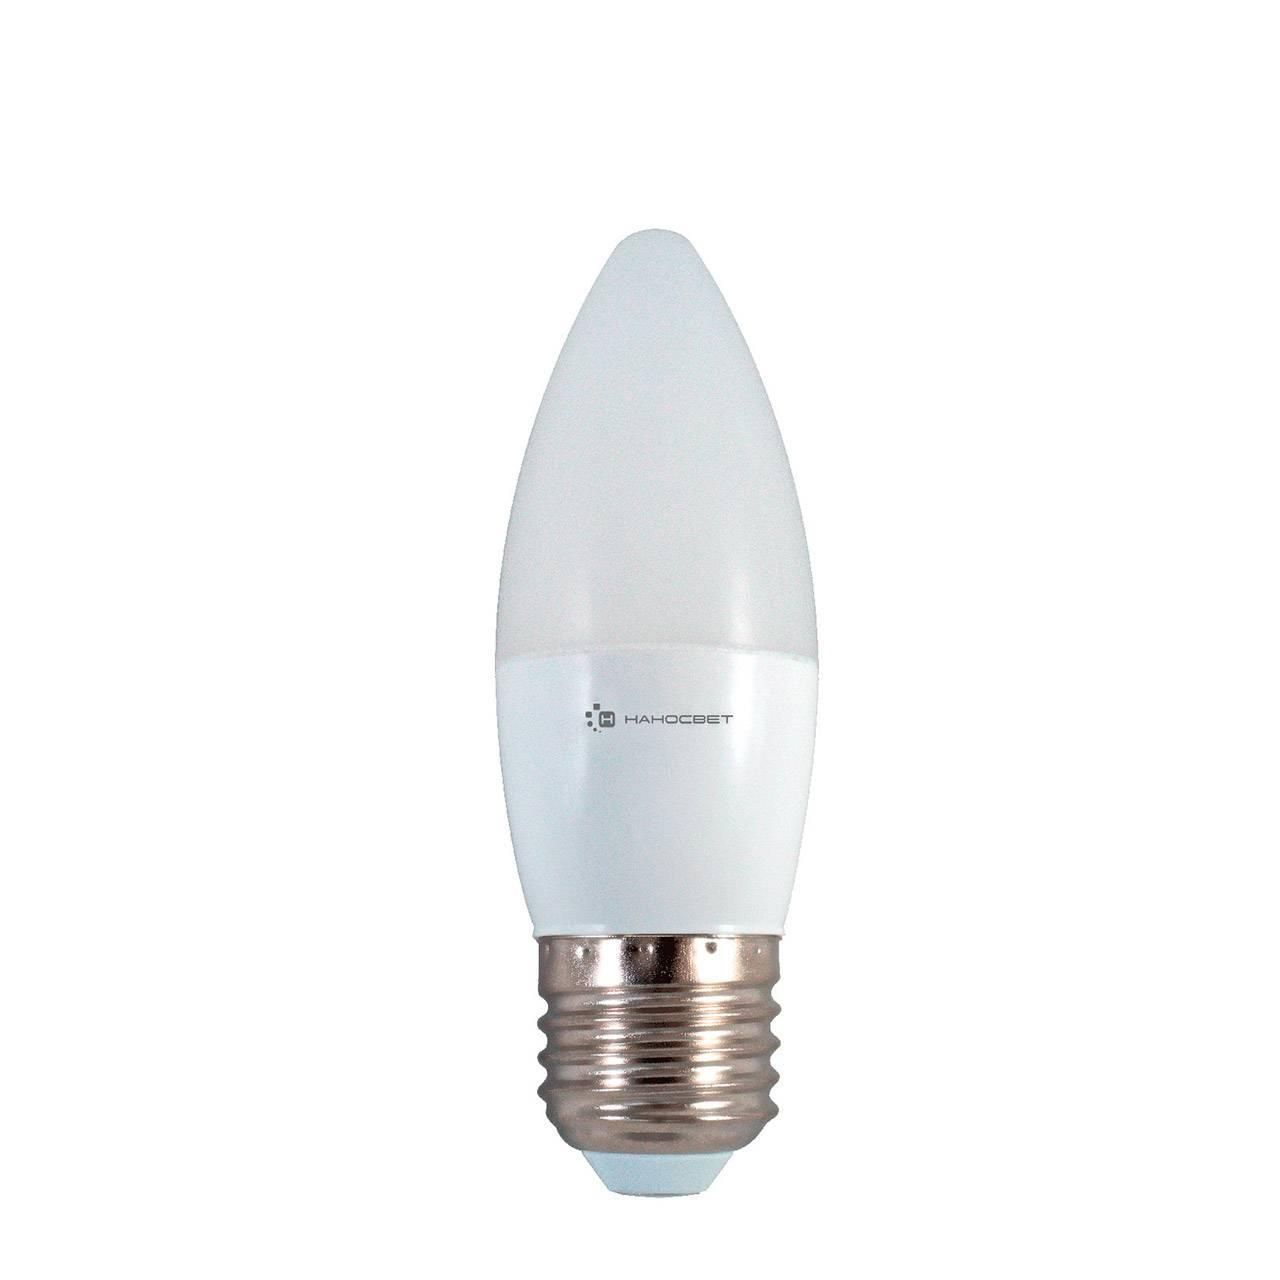 Лампа светодиодная E27 6W 4000K матовая LE-CD-6/E27/840 L253 e27 6w 6 led 540 lumen 6000k white light bulb 85 265v ac